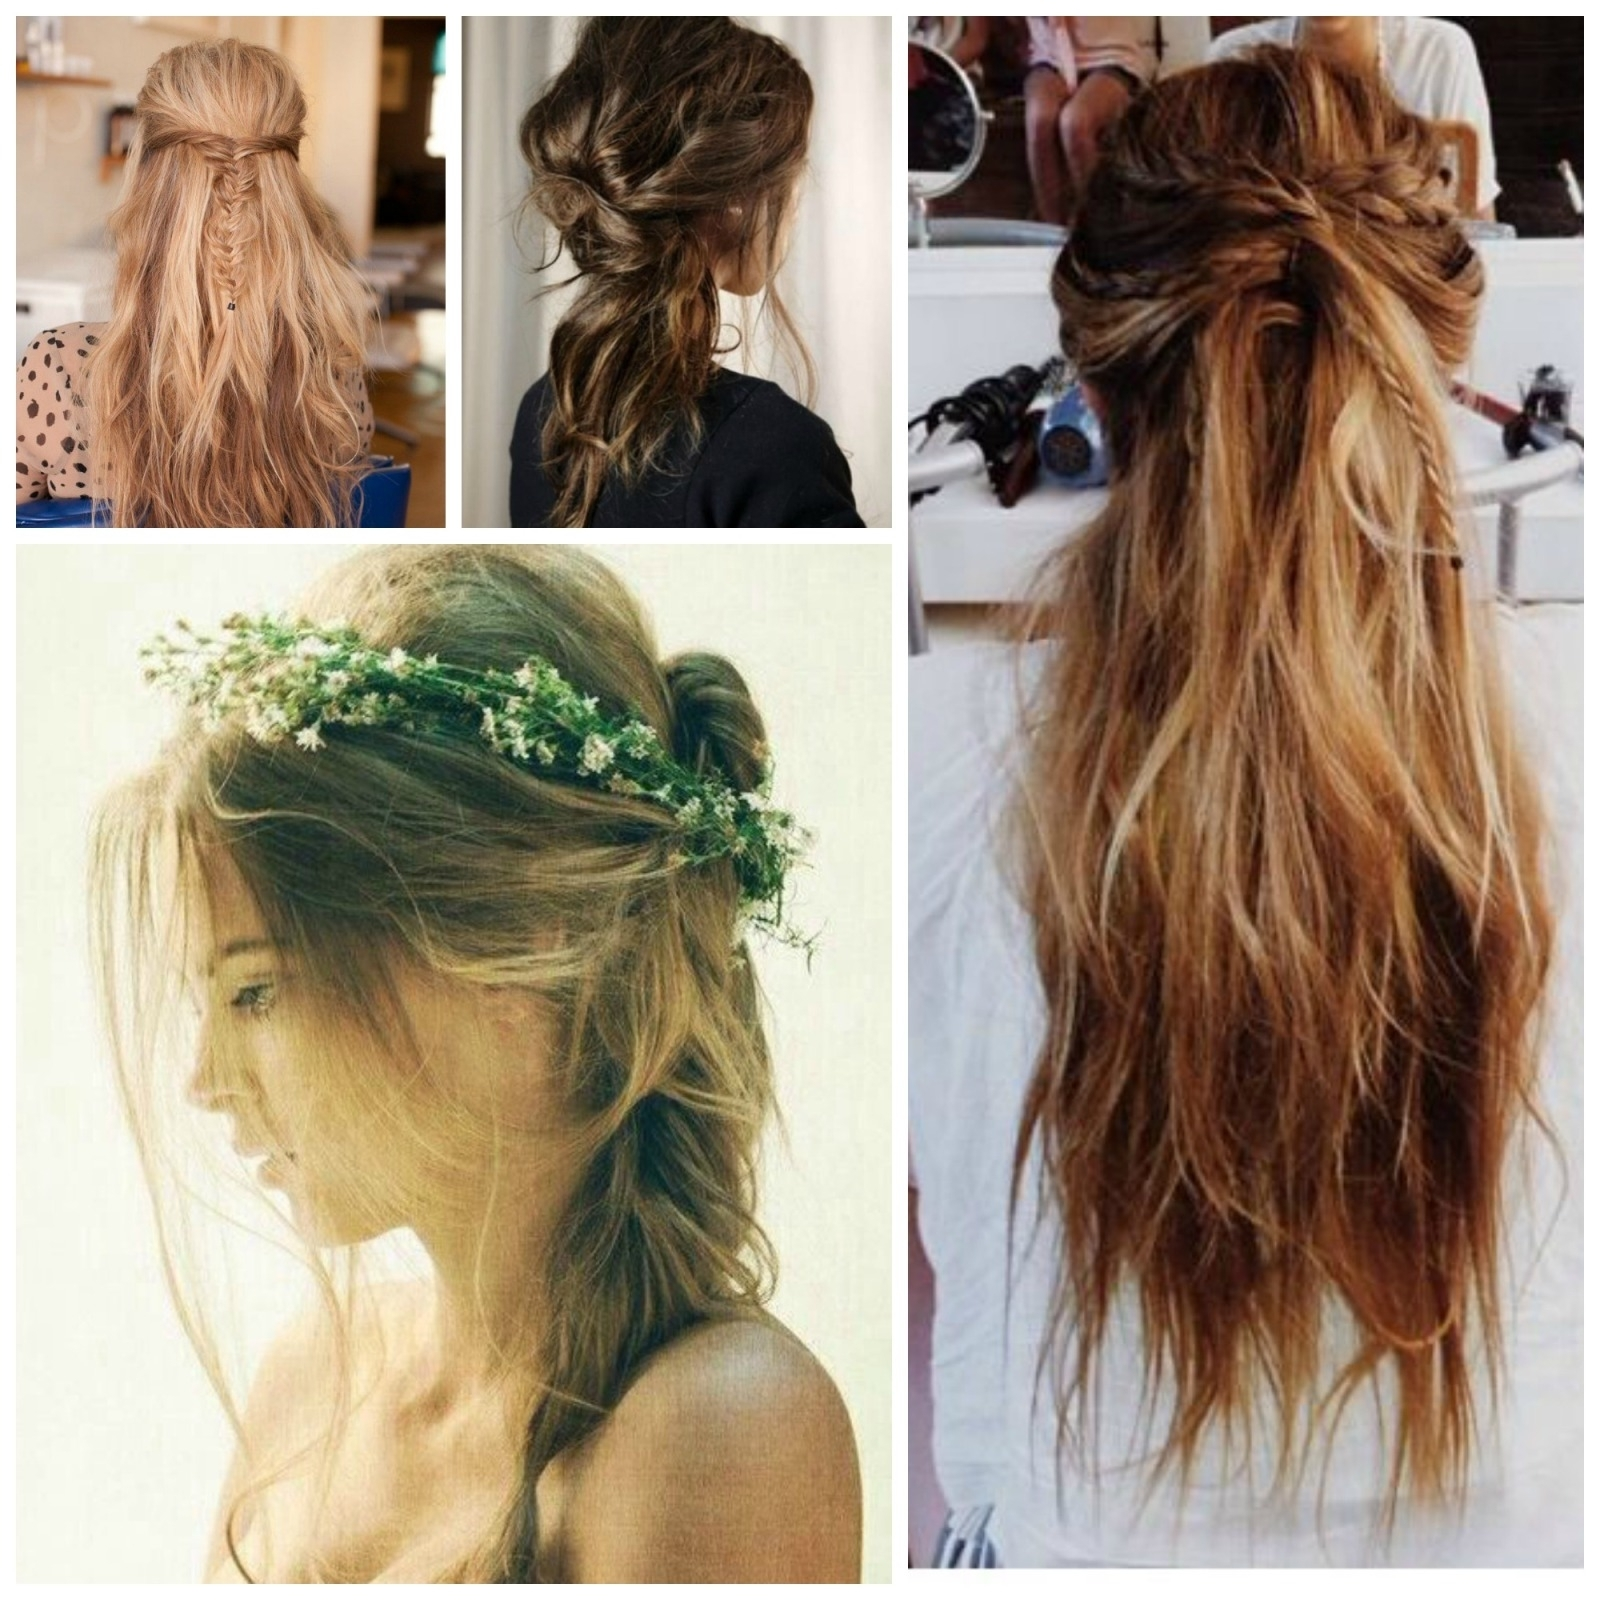 Diy Perfect Summer Boho Hairstyles – High Style Life Within Popular Boho Braided Hairstyles (Gallery 14 of 15)